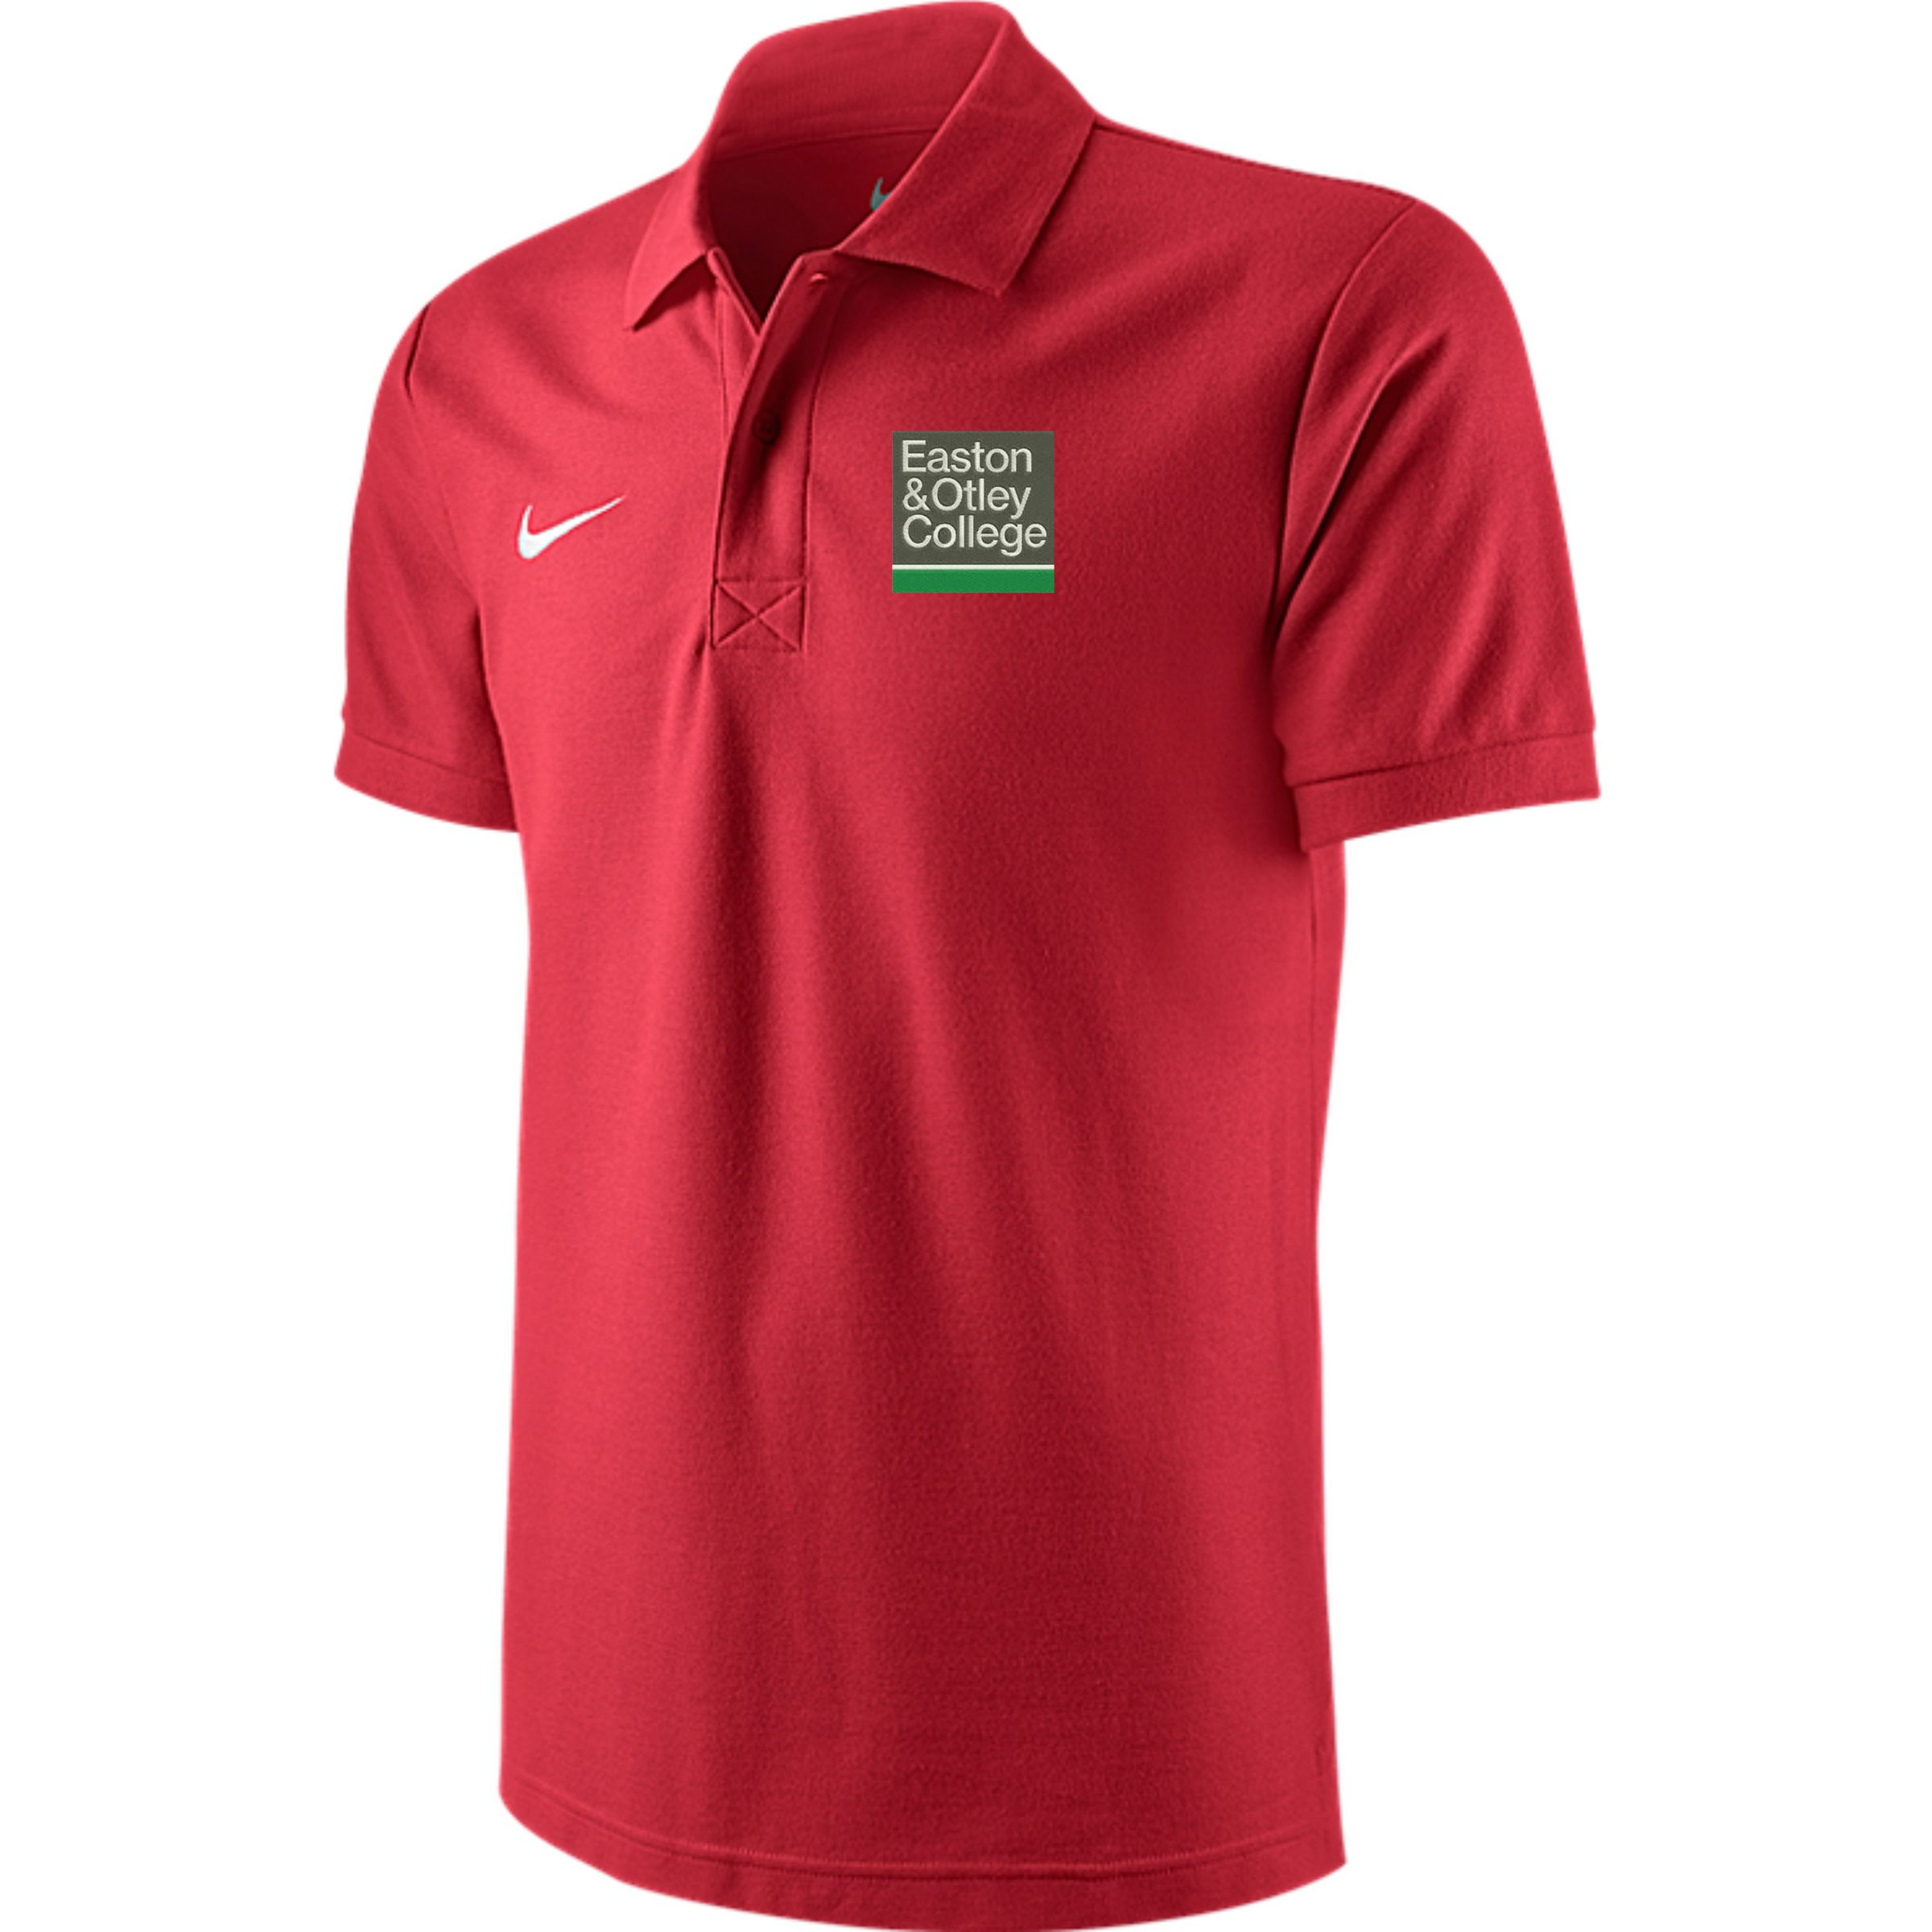 Easton Sports And Public Services Staff Polo